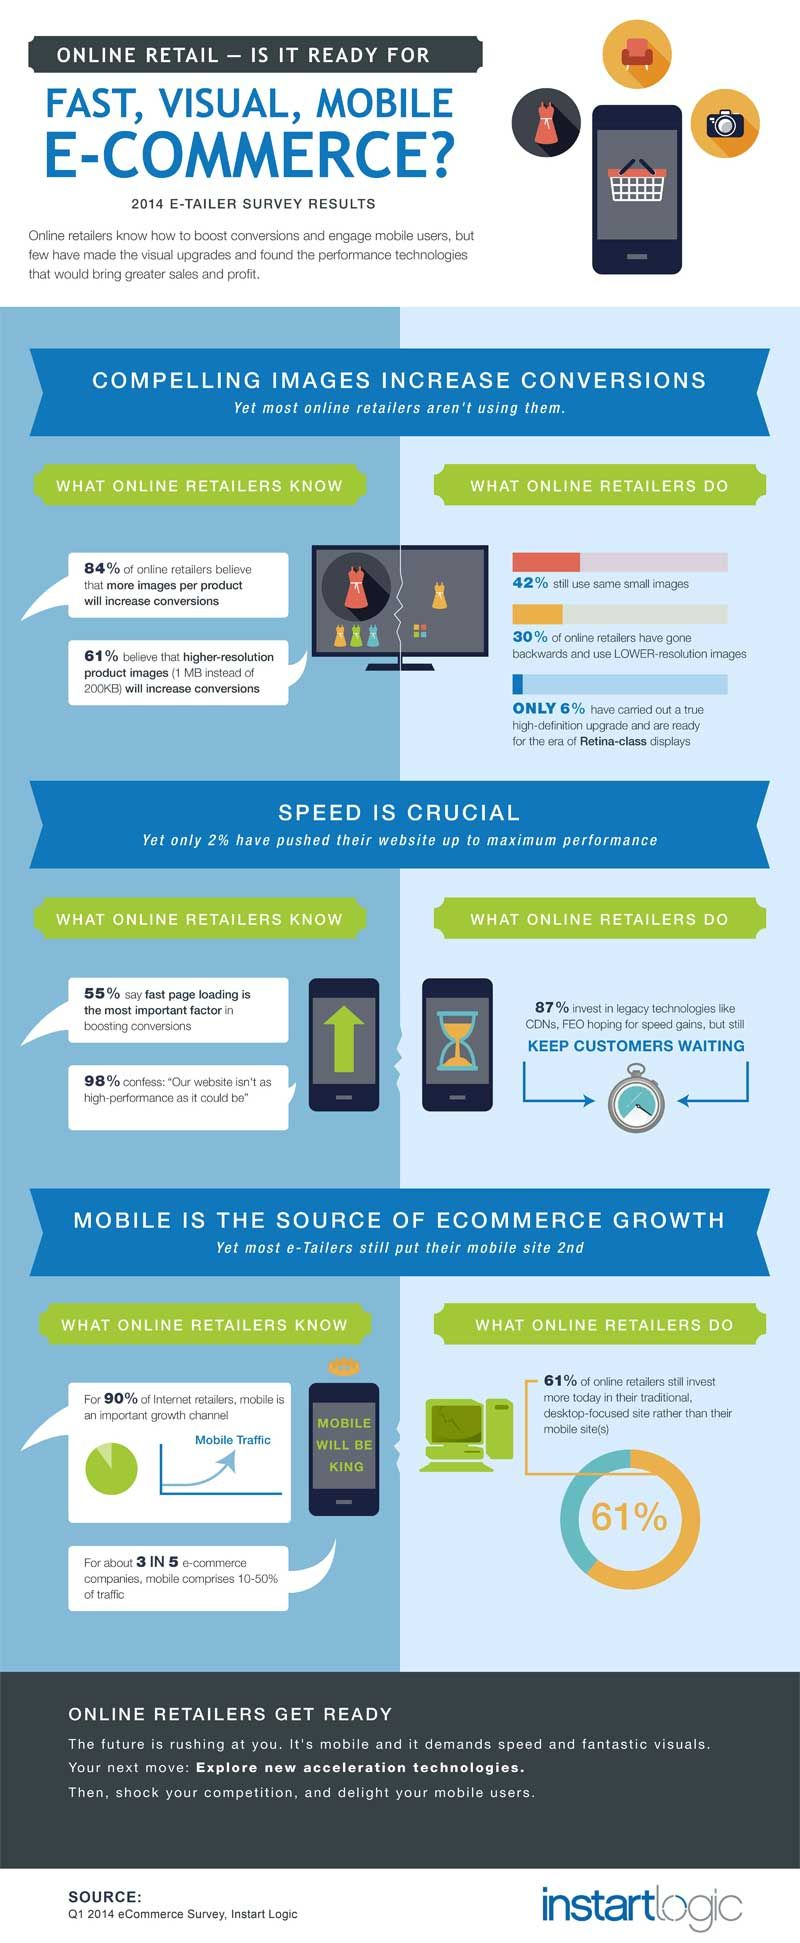 Online Retail is it ready for Fast, Visual Mobile E